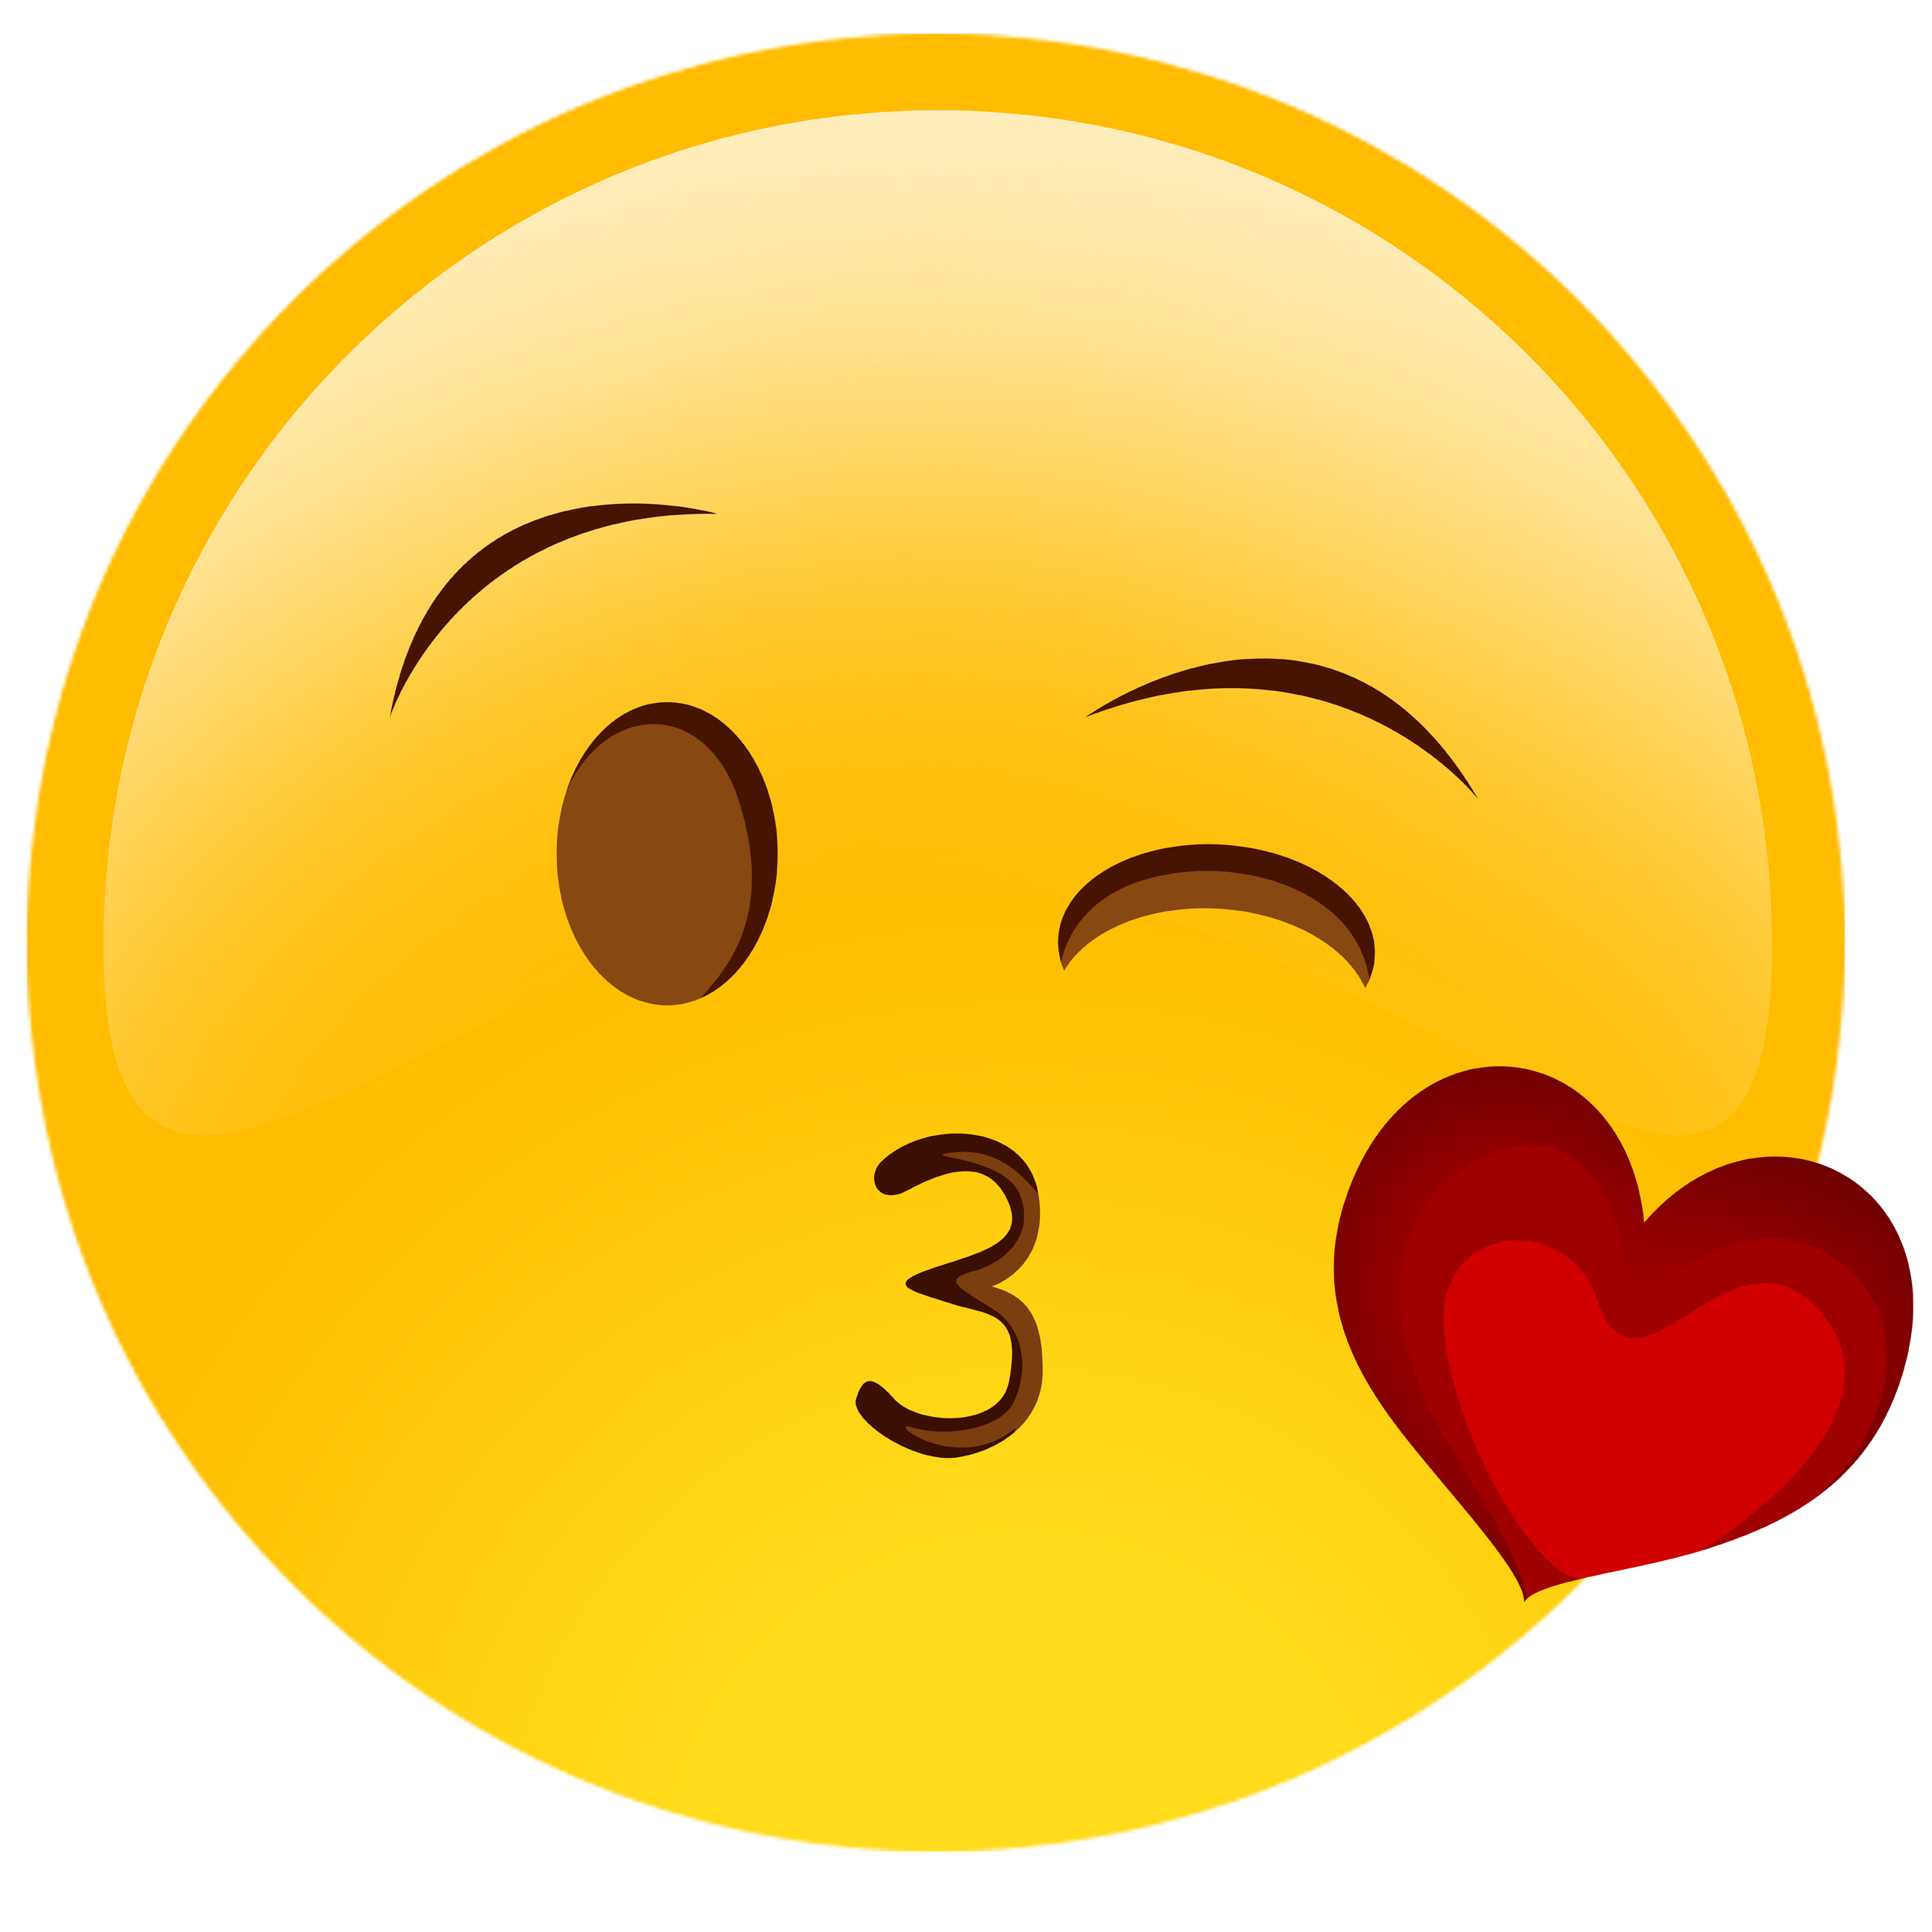 What emoji are you. Study clipart emoticon